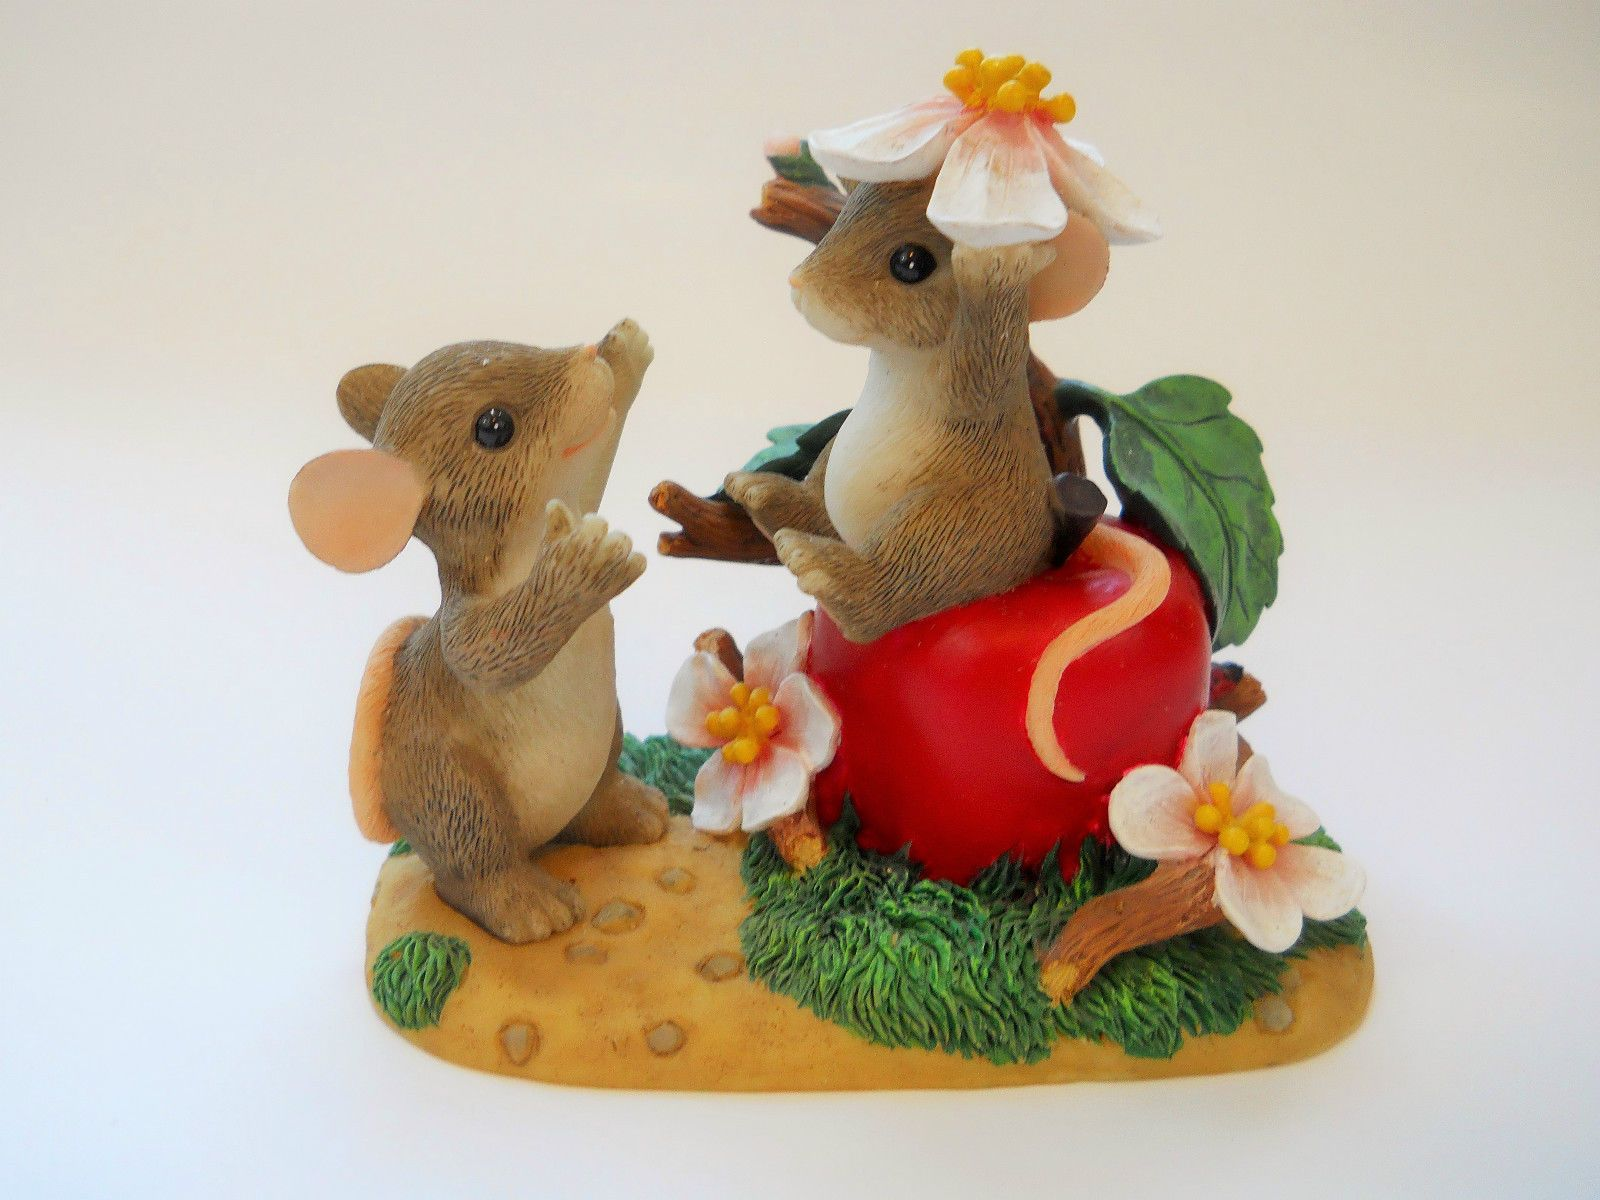 """Charming Tails """"Apple of My Eye"""" Mouse & Apple Figurine by Fitz and Floyd."""